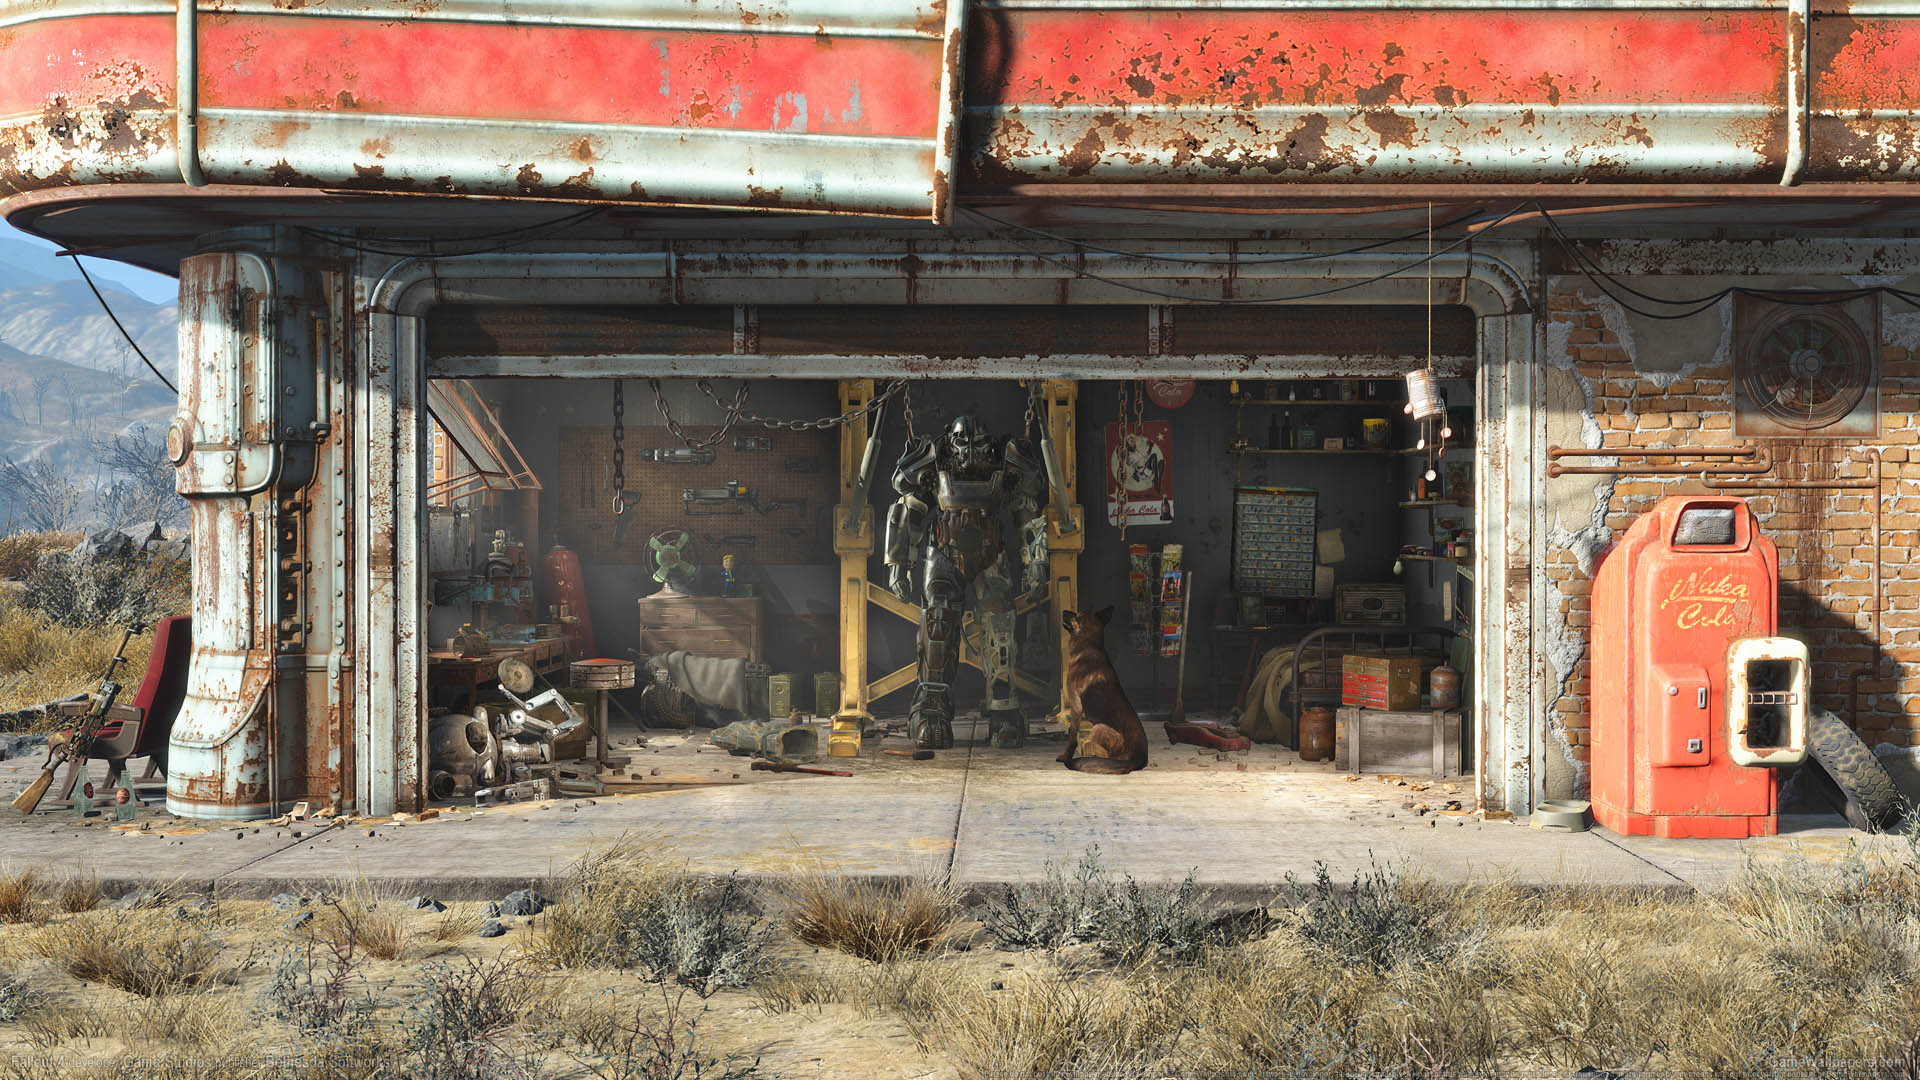 fallout 4 wallpaper or background fallout 4 wallpaper or background 01